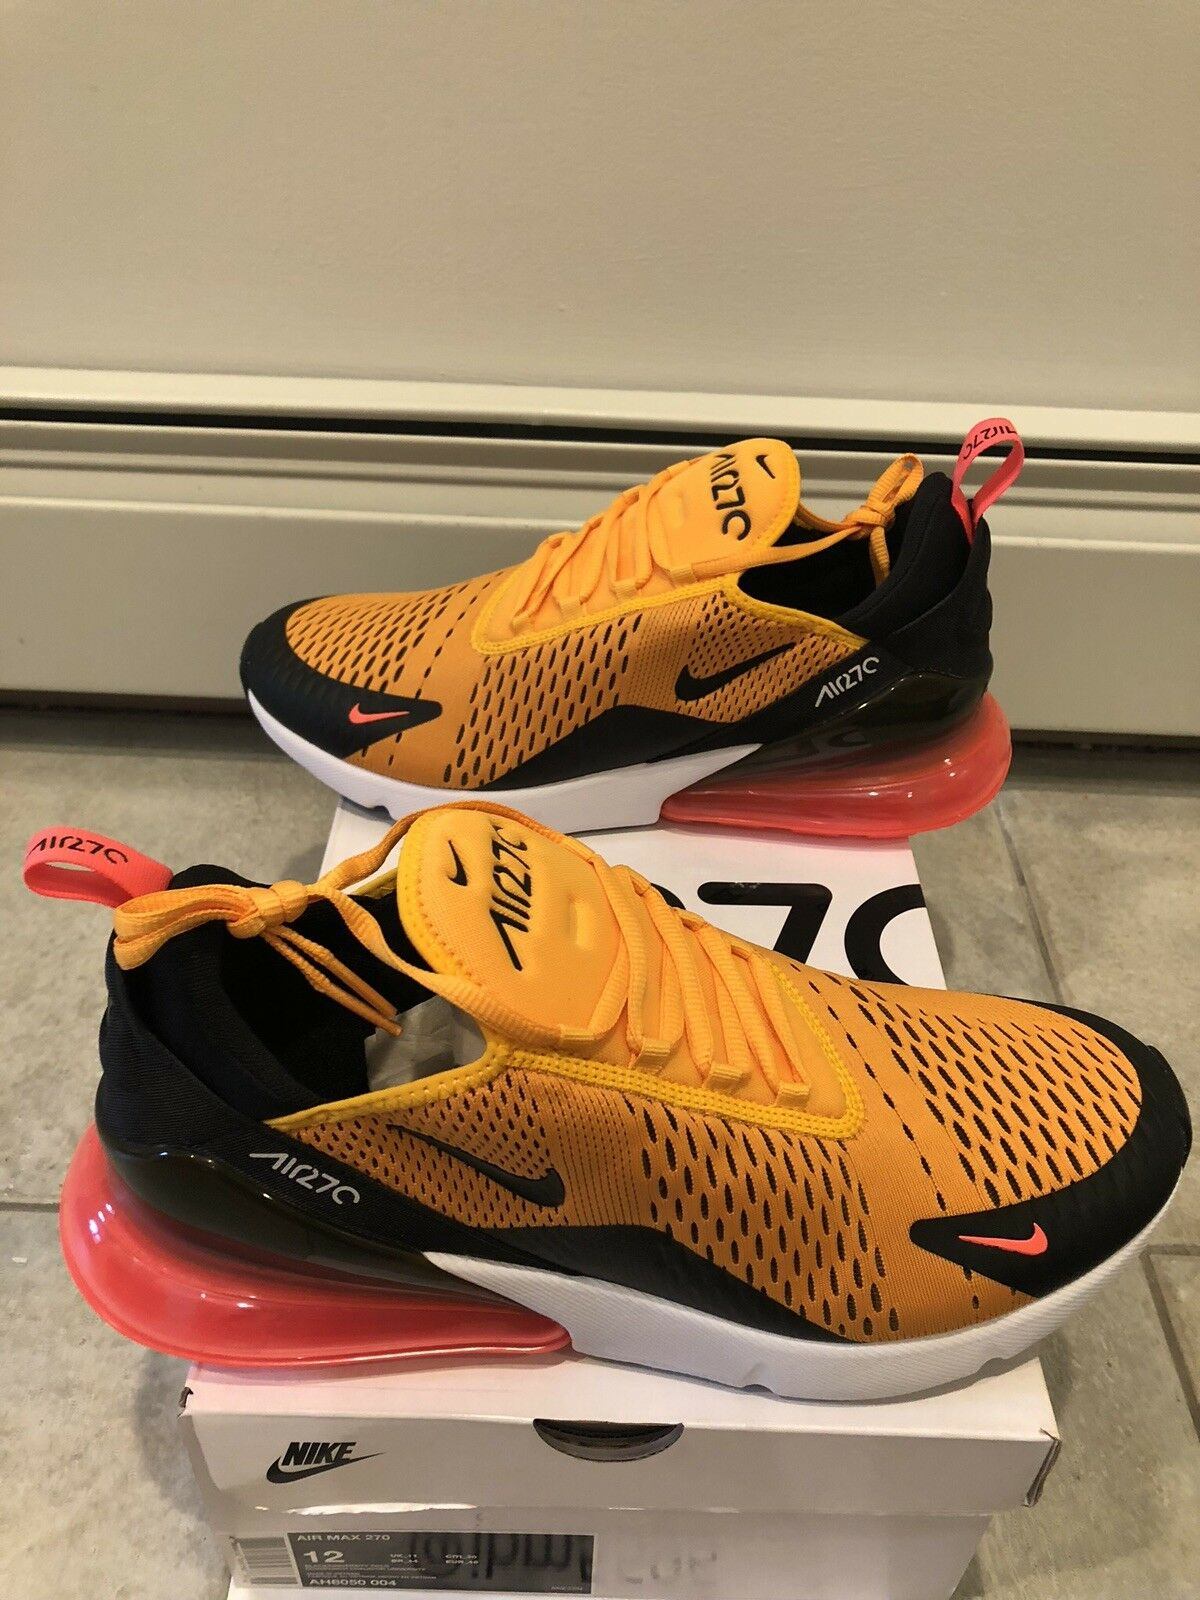 Nike Air Max 270 Uomo's Sz11.5 Univeristy Gold AH8050-004 Brand New